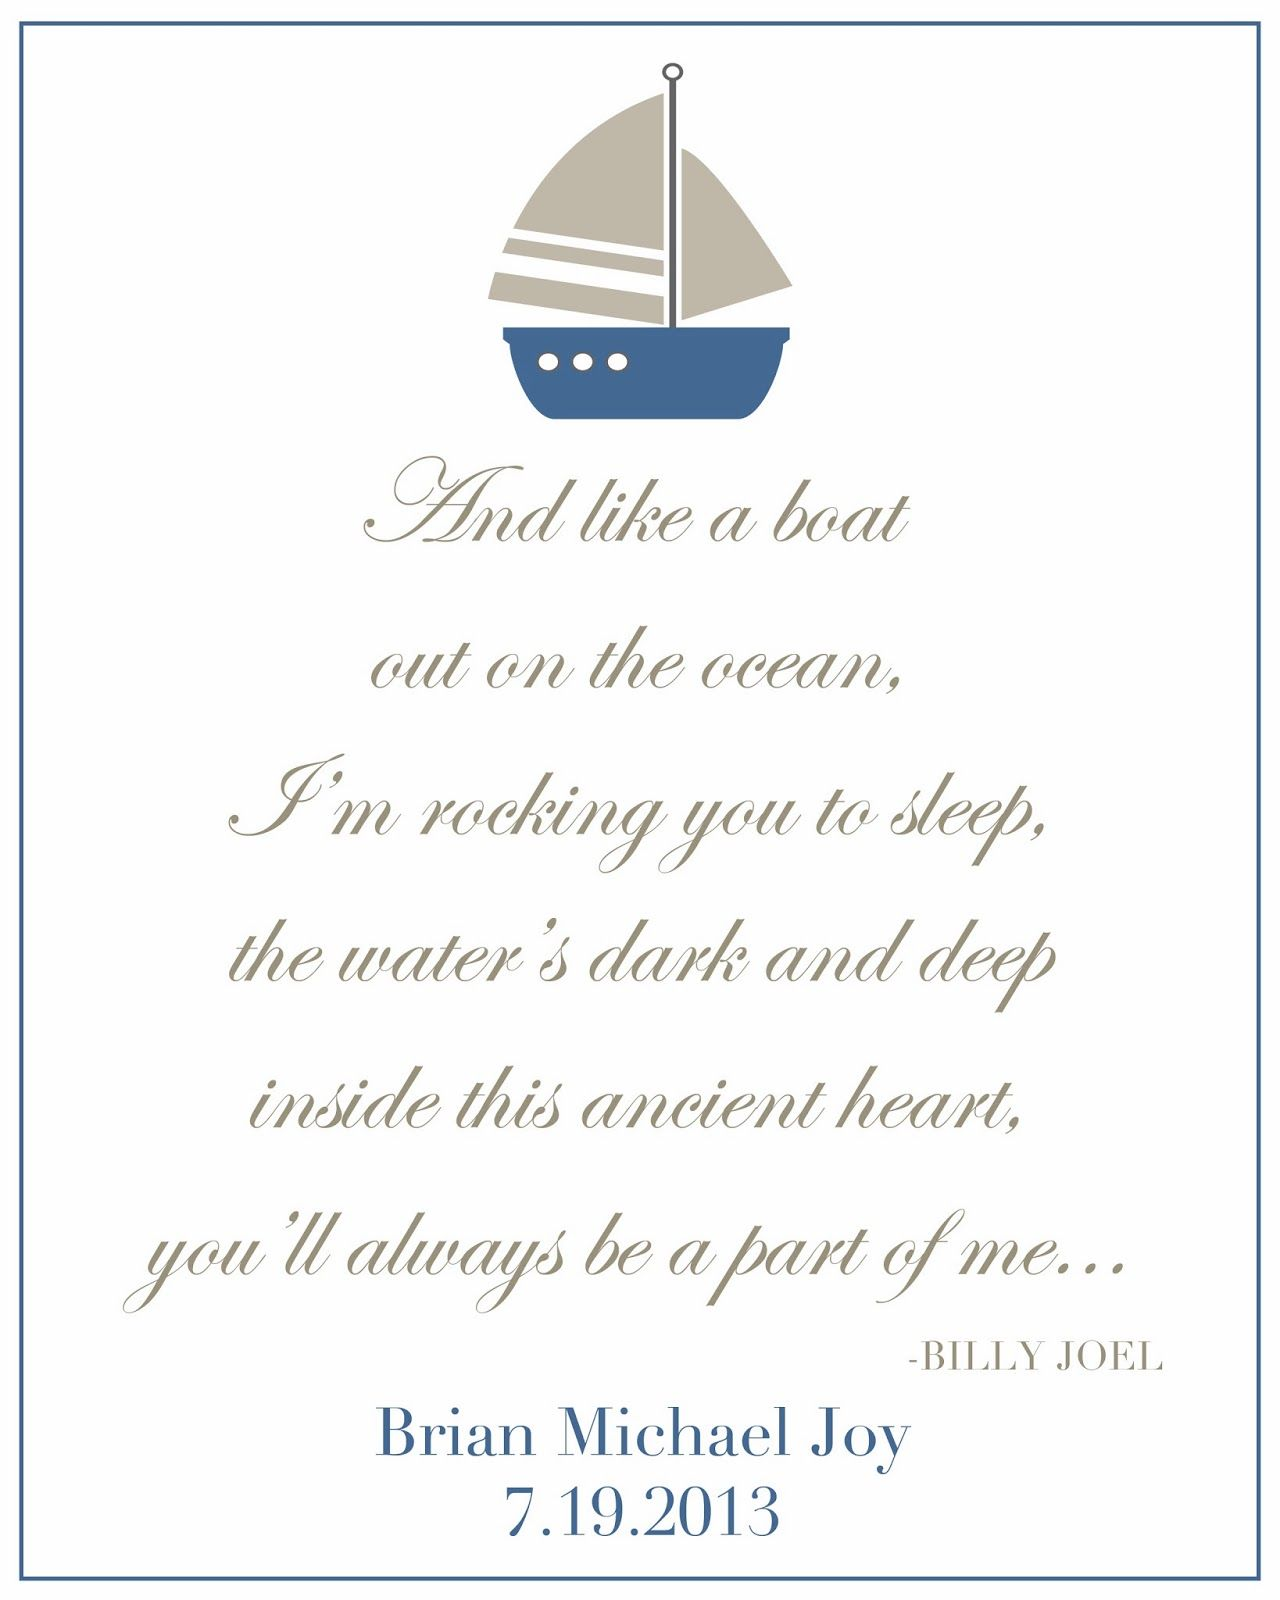 Billy Joel S Lullaby Sailboat Print With Images Billy Joel